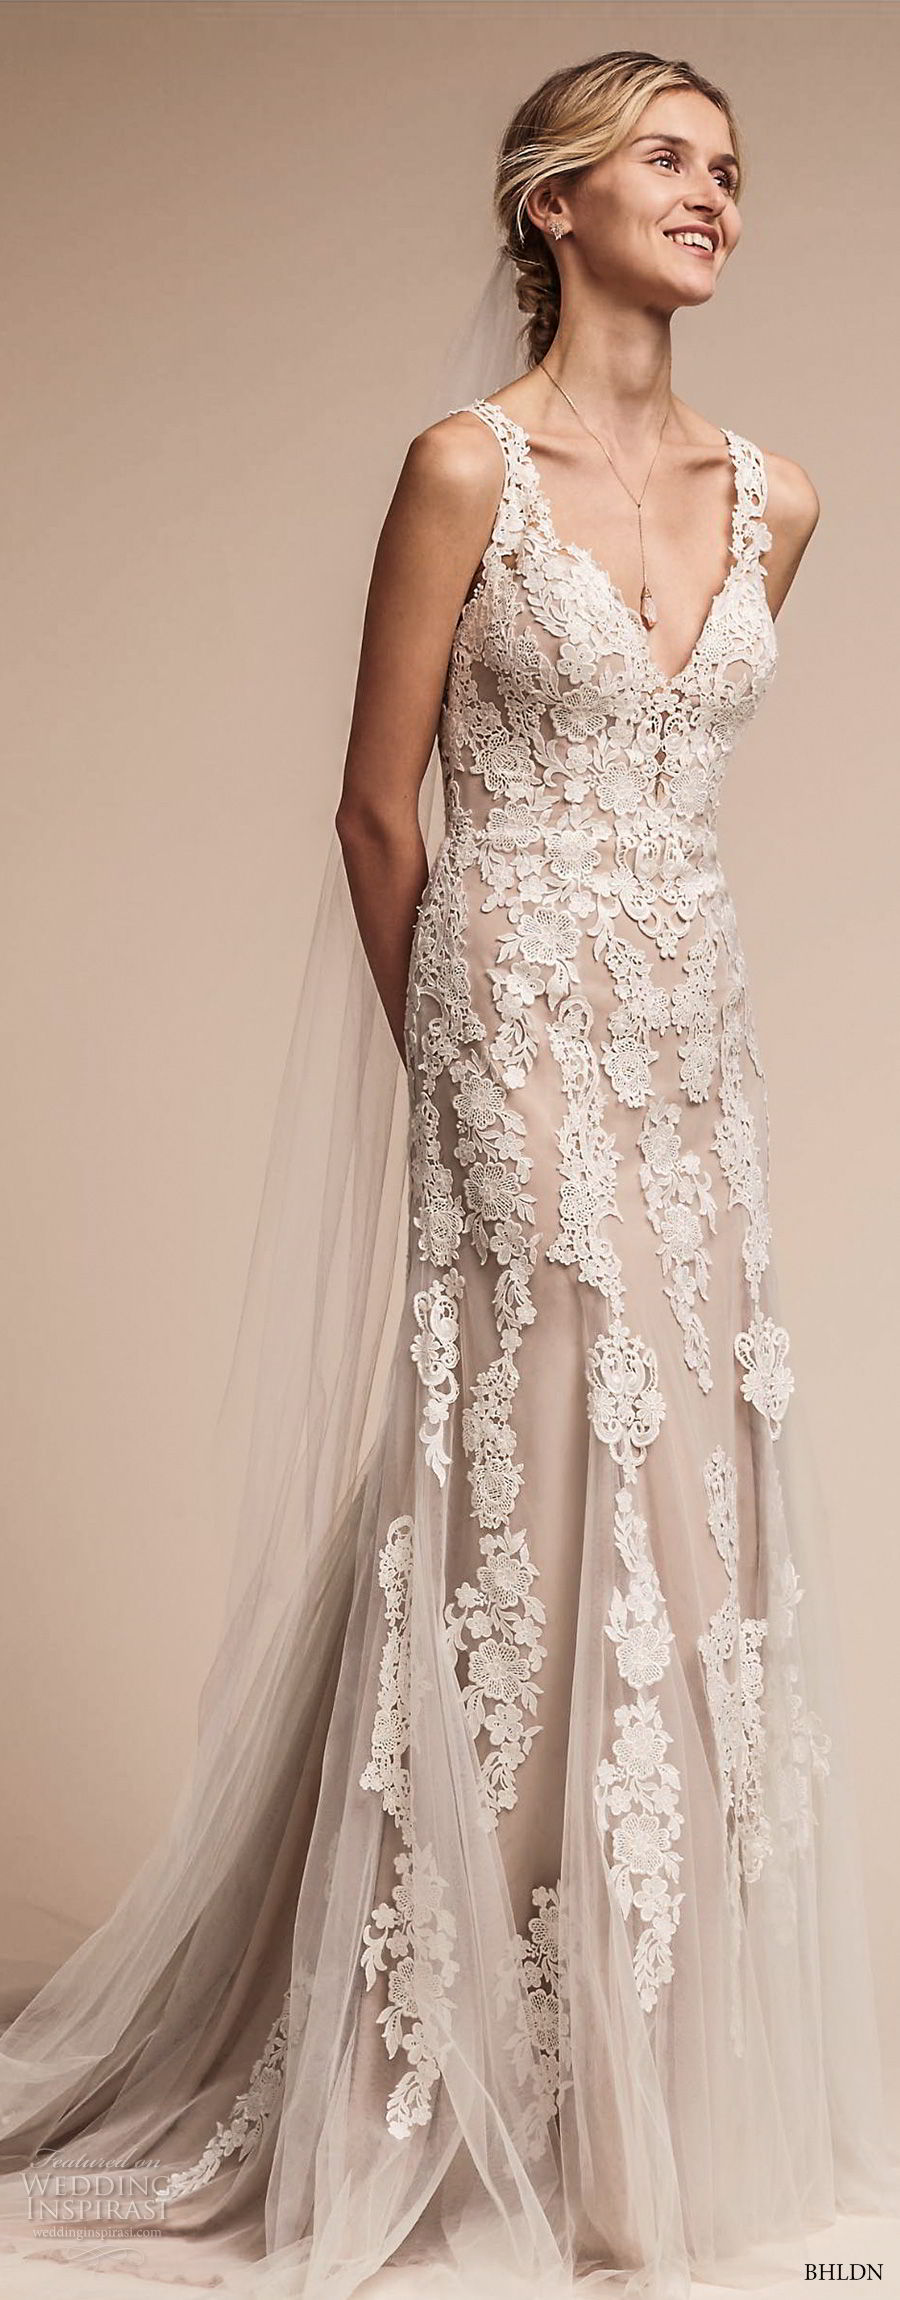 bhldn fall 2017  americana bridal sleeveless embroidered strap heavily embellished bodice elegant romantic sheath a  line wedding dress lace back short train (monarch) fv